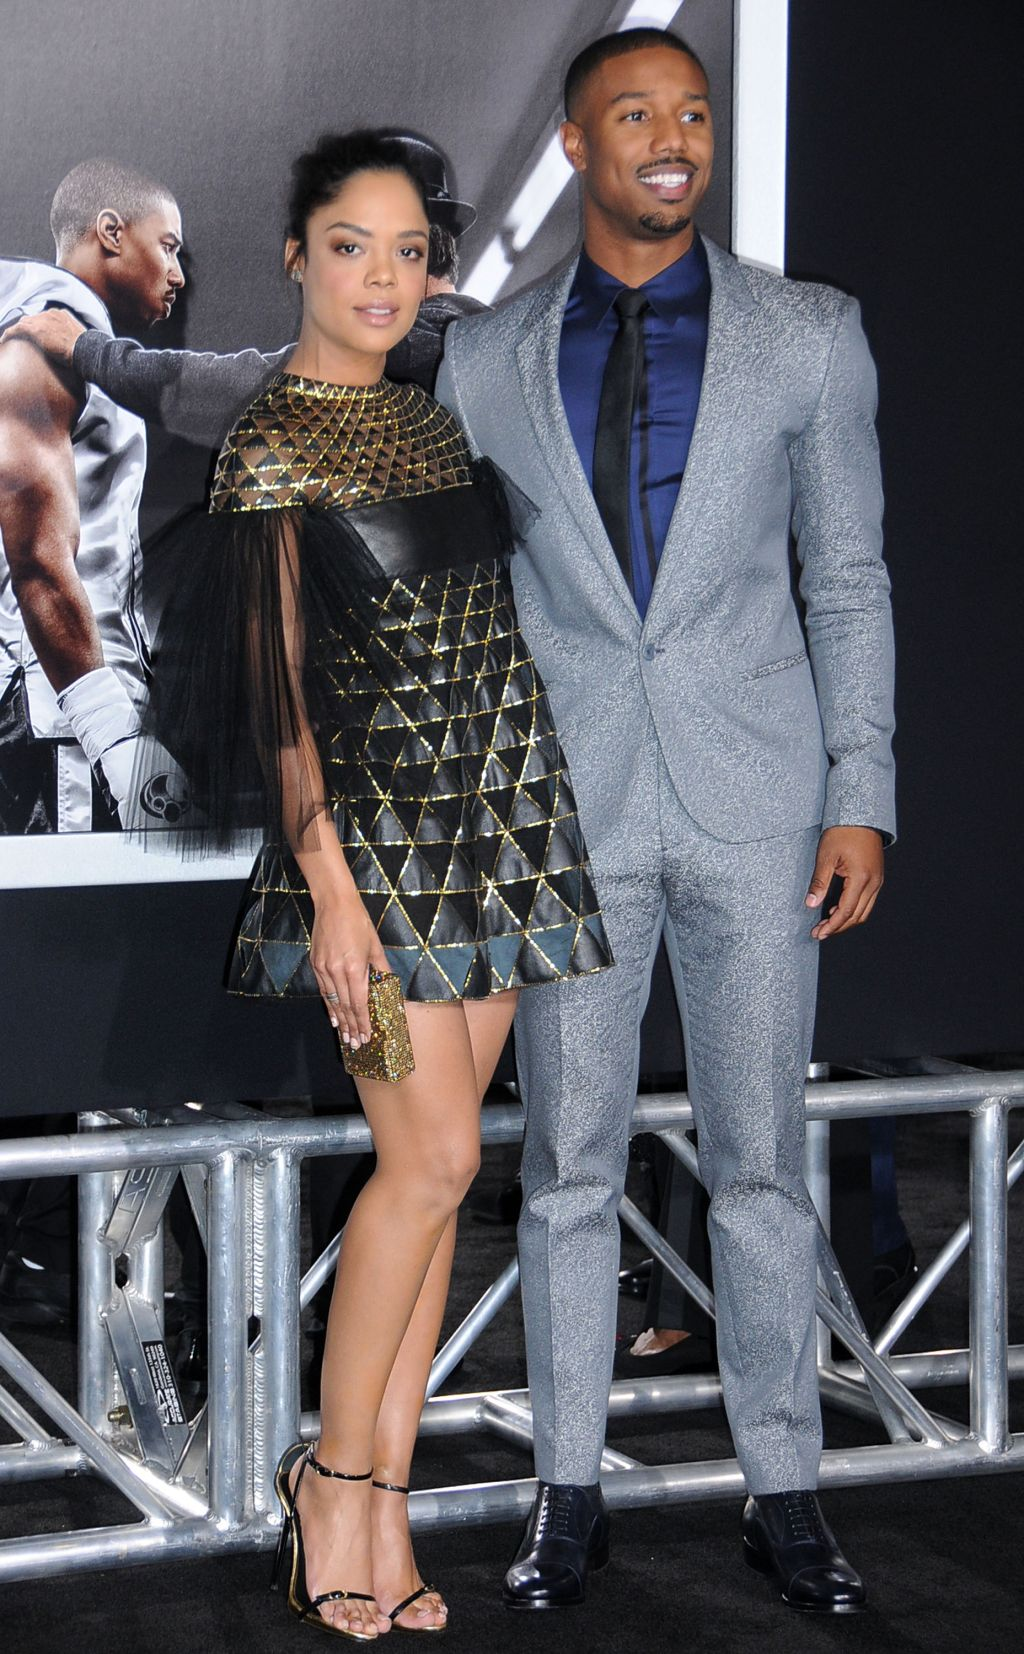 Premiere Of Warner Bros. Pictures' 'Creed' - Arrivals